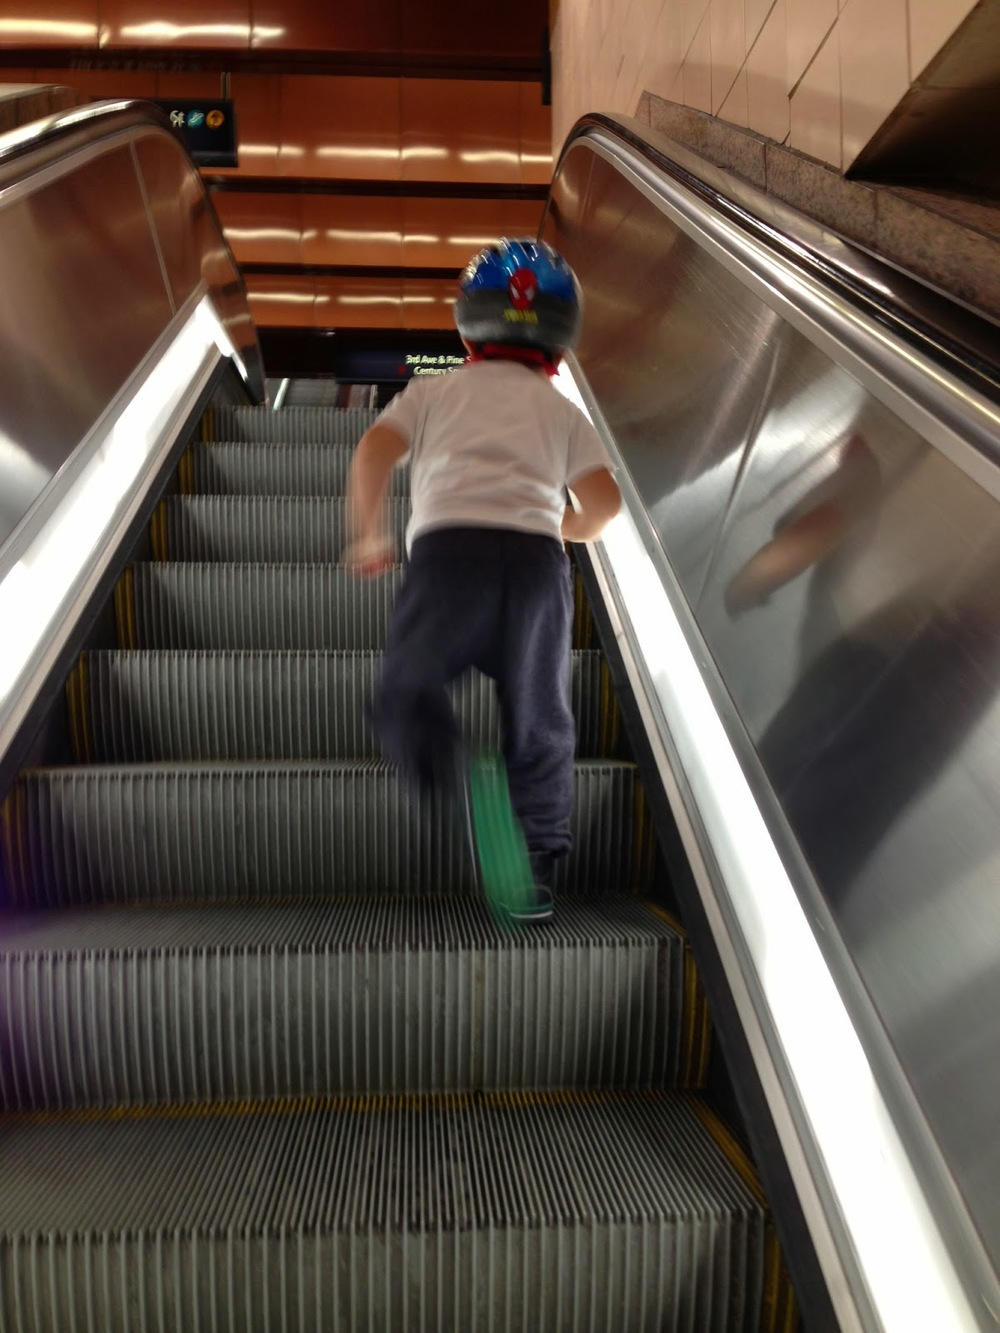 Even an escalator is fun when you're three!